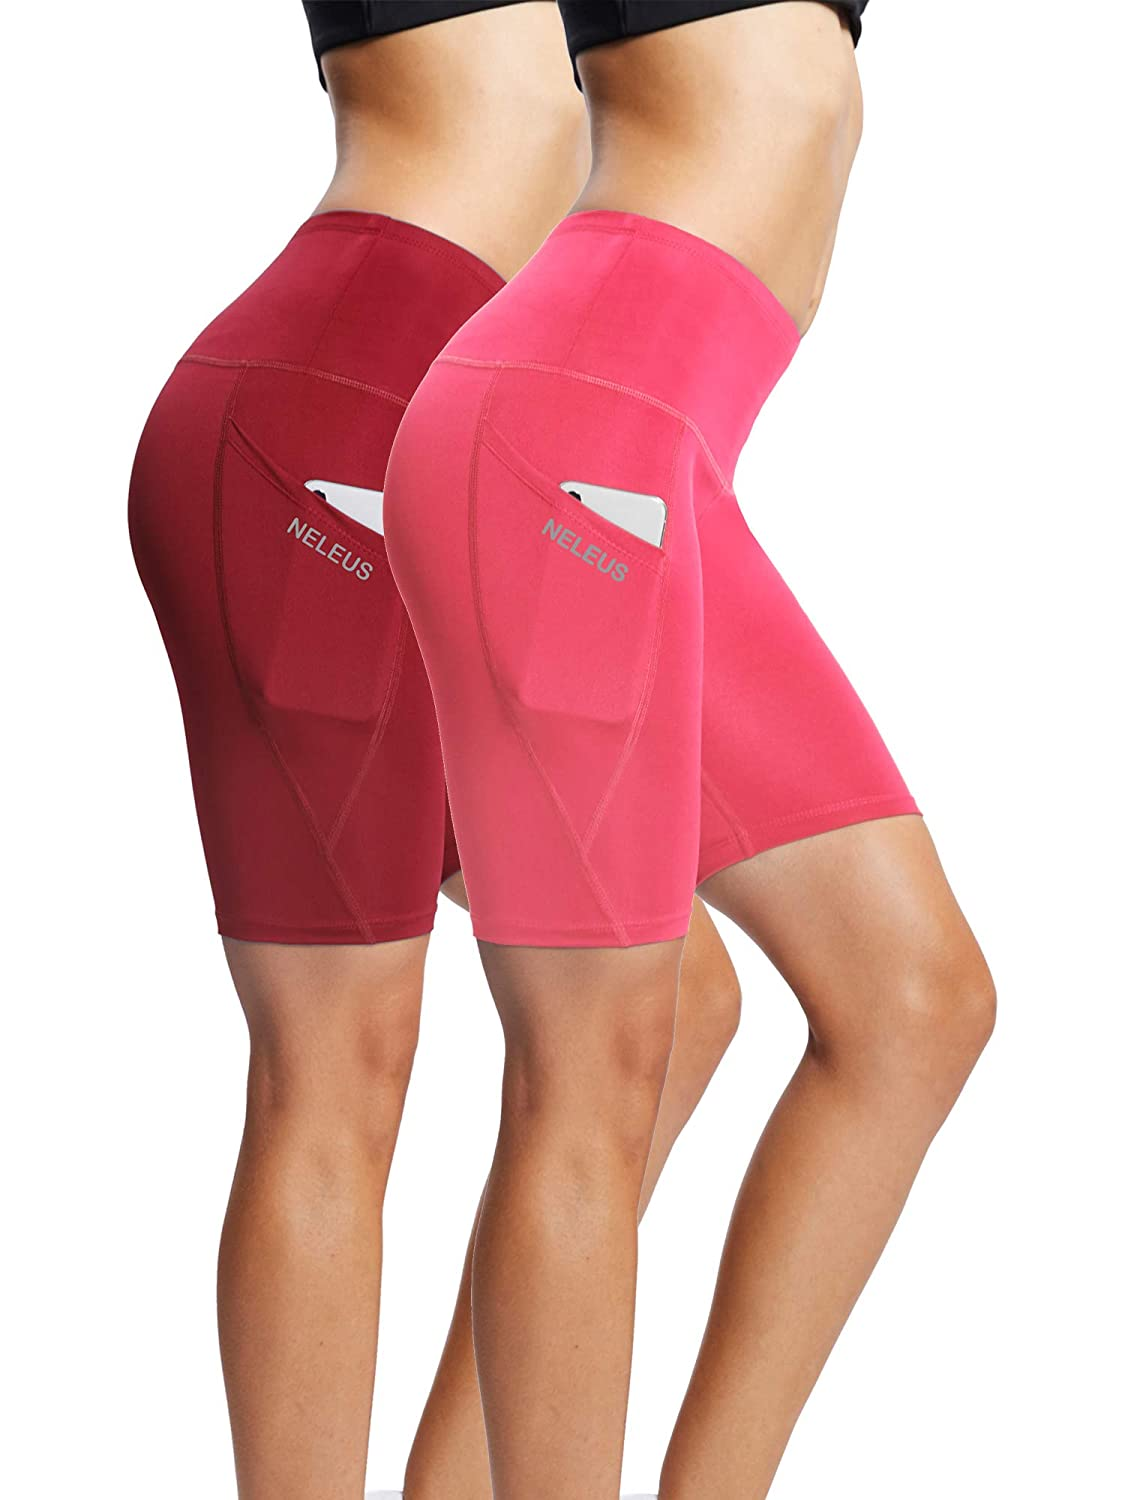 Neleus Womens Workout Compression Yoga Shorts with Pocket